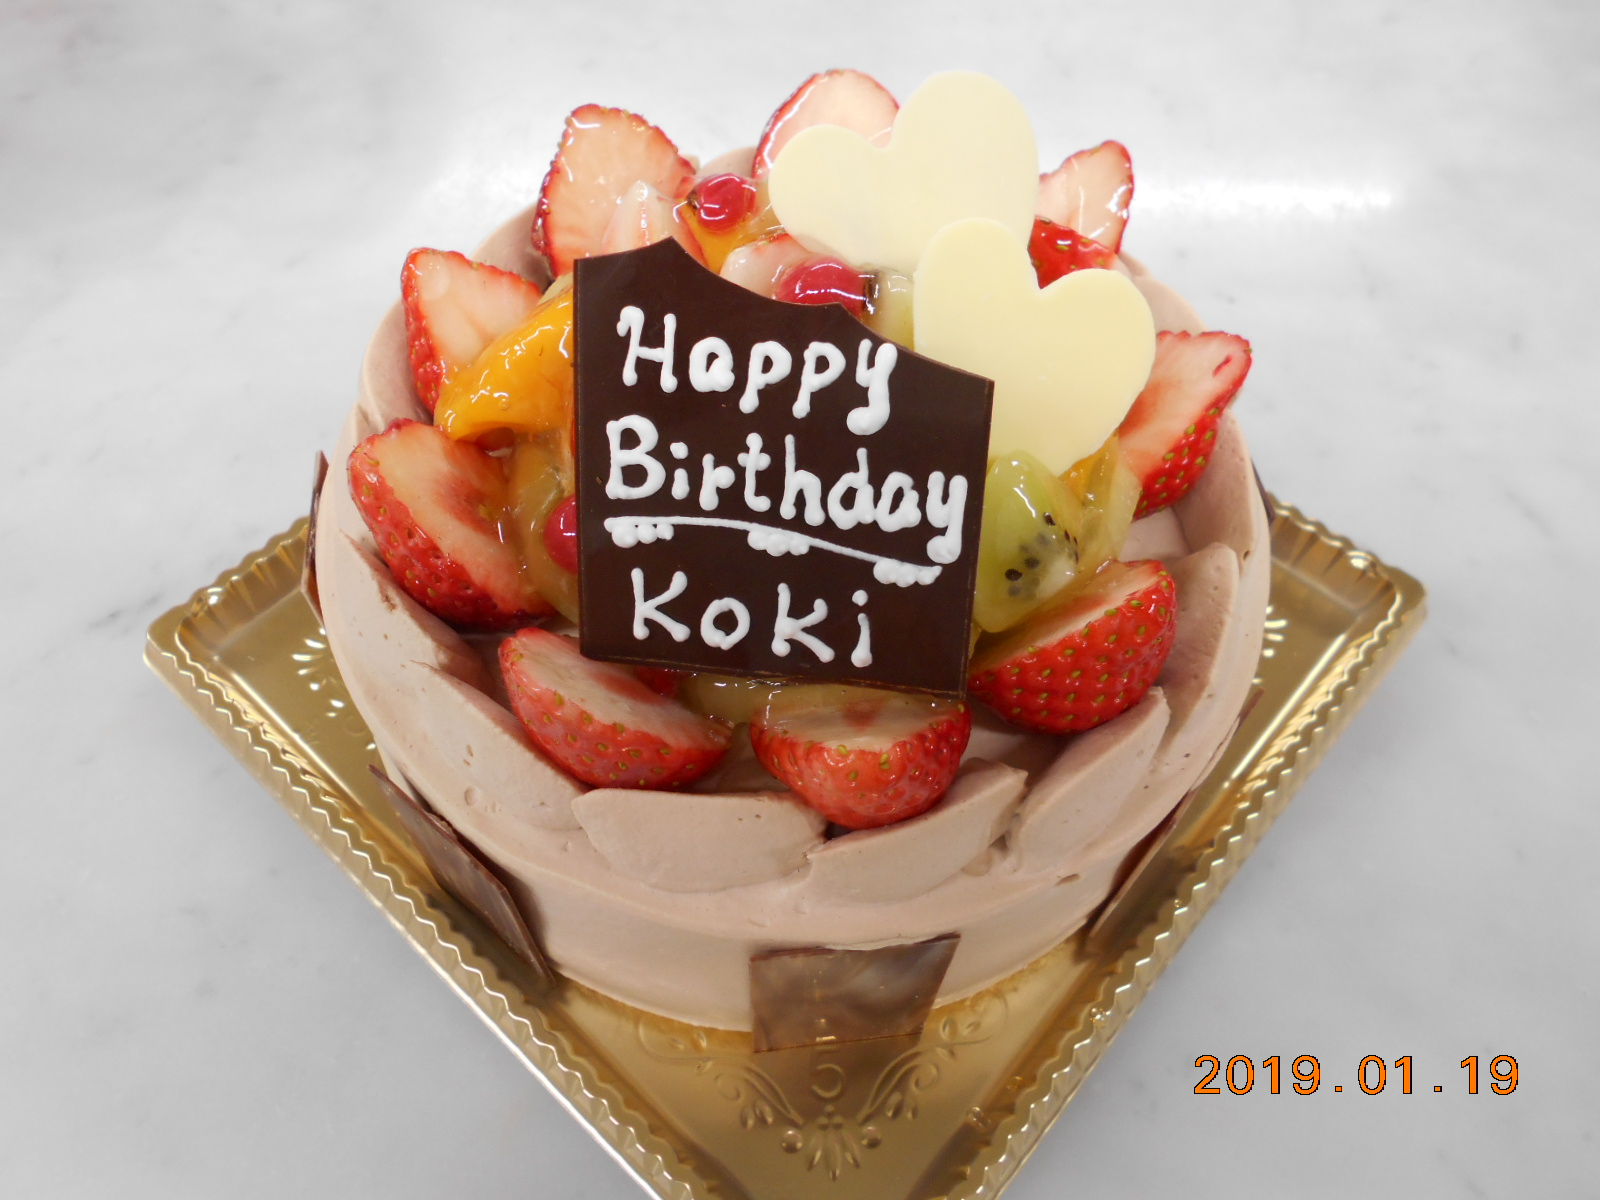 HappyBirthday Koki